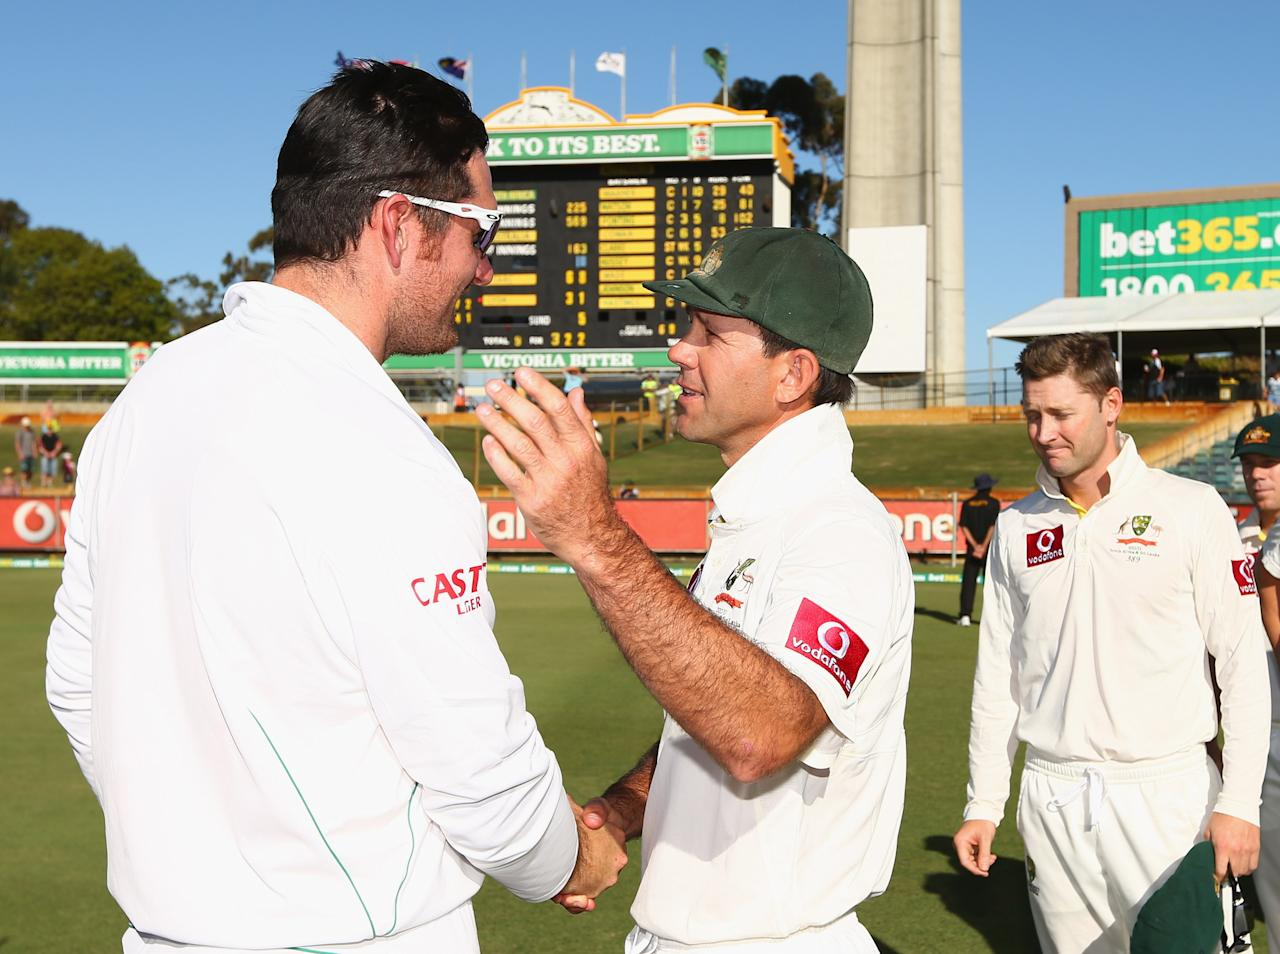 PERTH, AUSTRALIA - DECEMBER 03:  Ricky Ponting of Australia shakes hands with Graeme Smith of South Africa after South Africa defeated Australia on day four of the Third Test Match between Australia and South Africa at WACA on December 3, 2012 in Perth, Australia.  (Photo by Robert Cianflone/Getty Images)